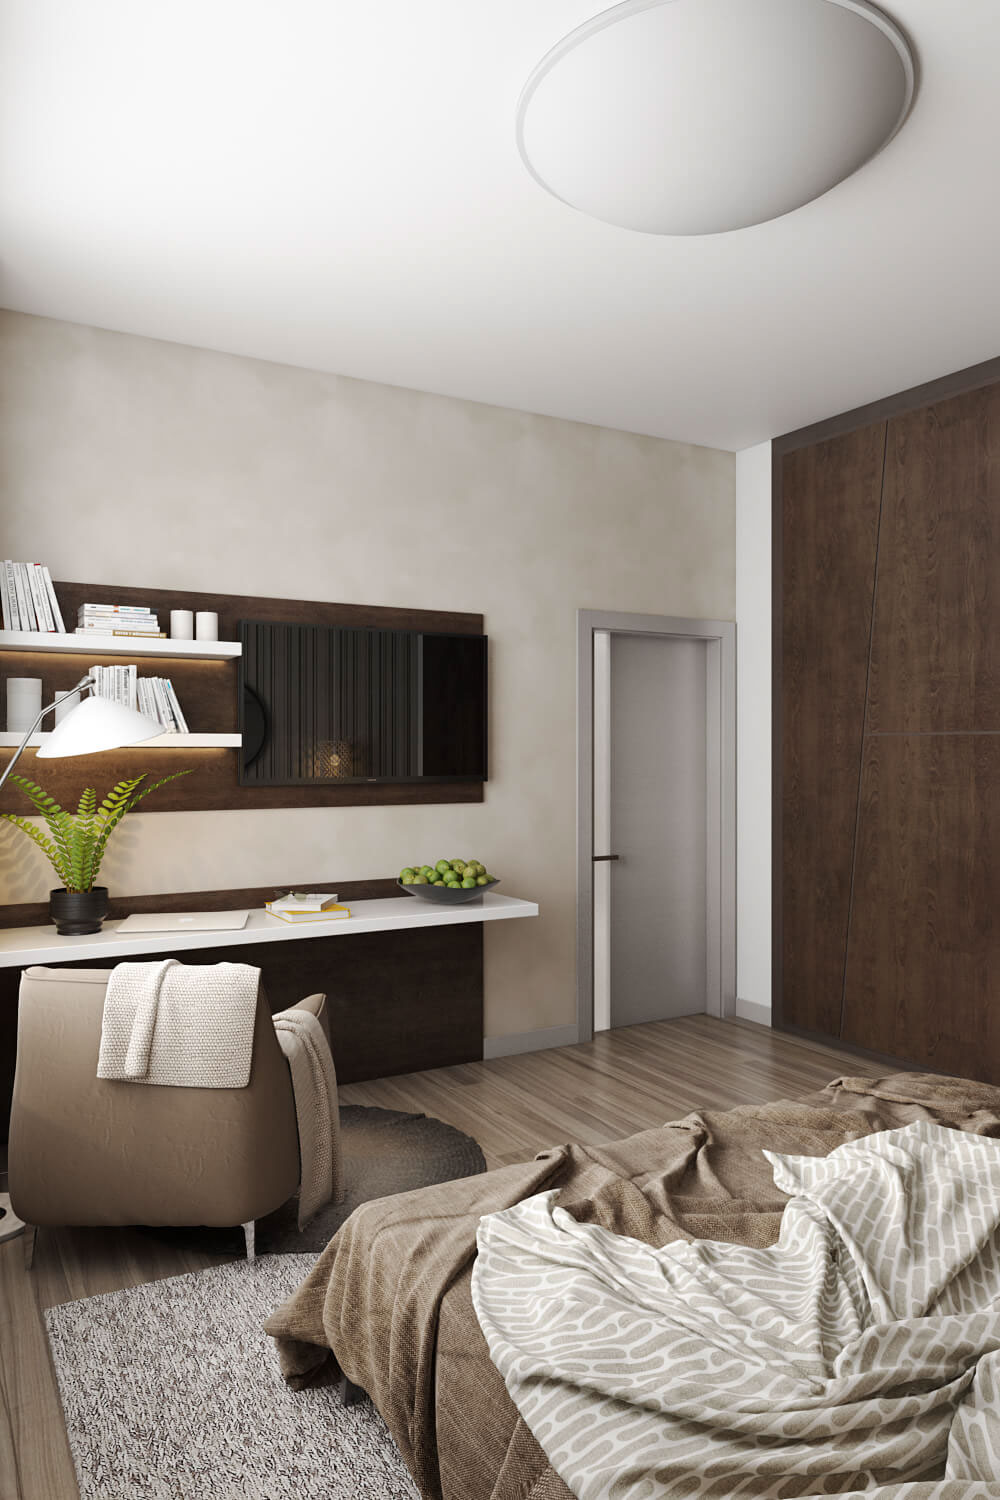 Aesthetic Bedroom Design Realistic 3D Visualization. on ...